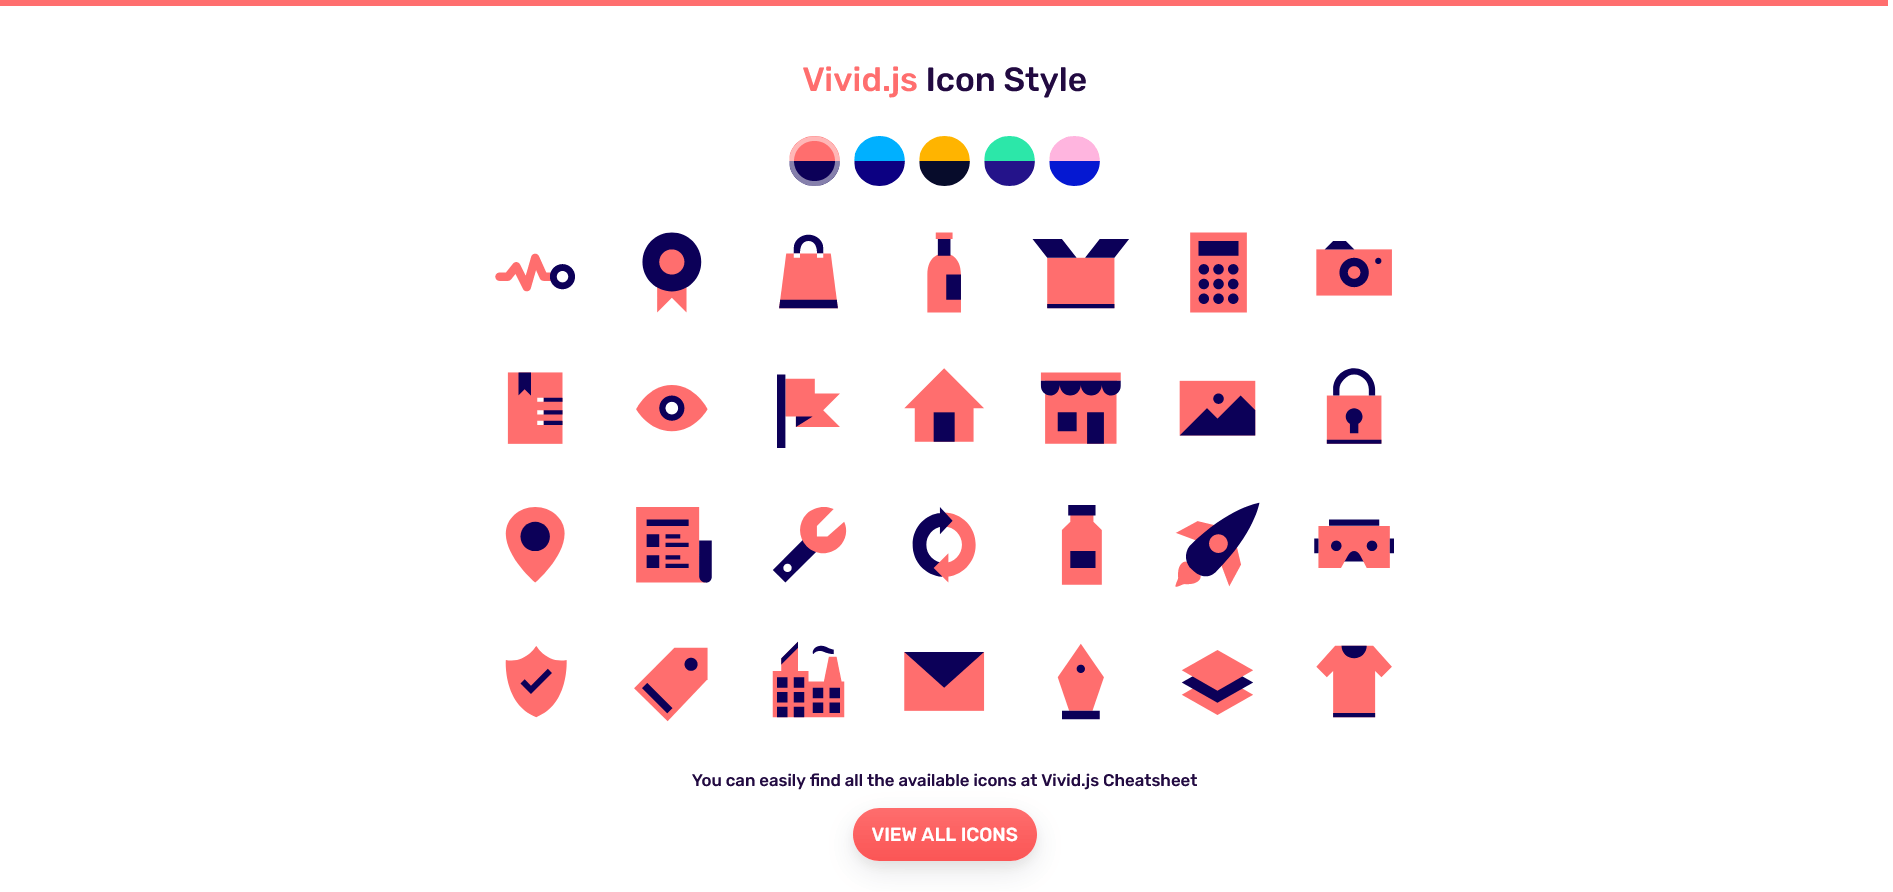 Screenshot 2021-04-30 at 08-05-50 Free Open Source SVG Icons Set Pack and Library [100+ Icons] - Vivid js.png